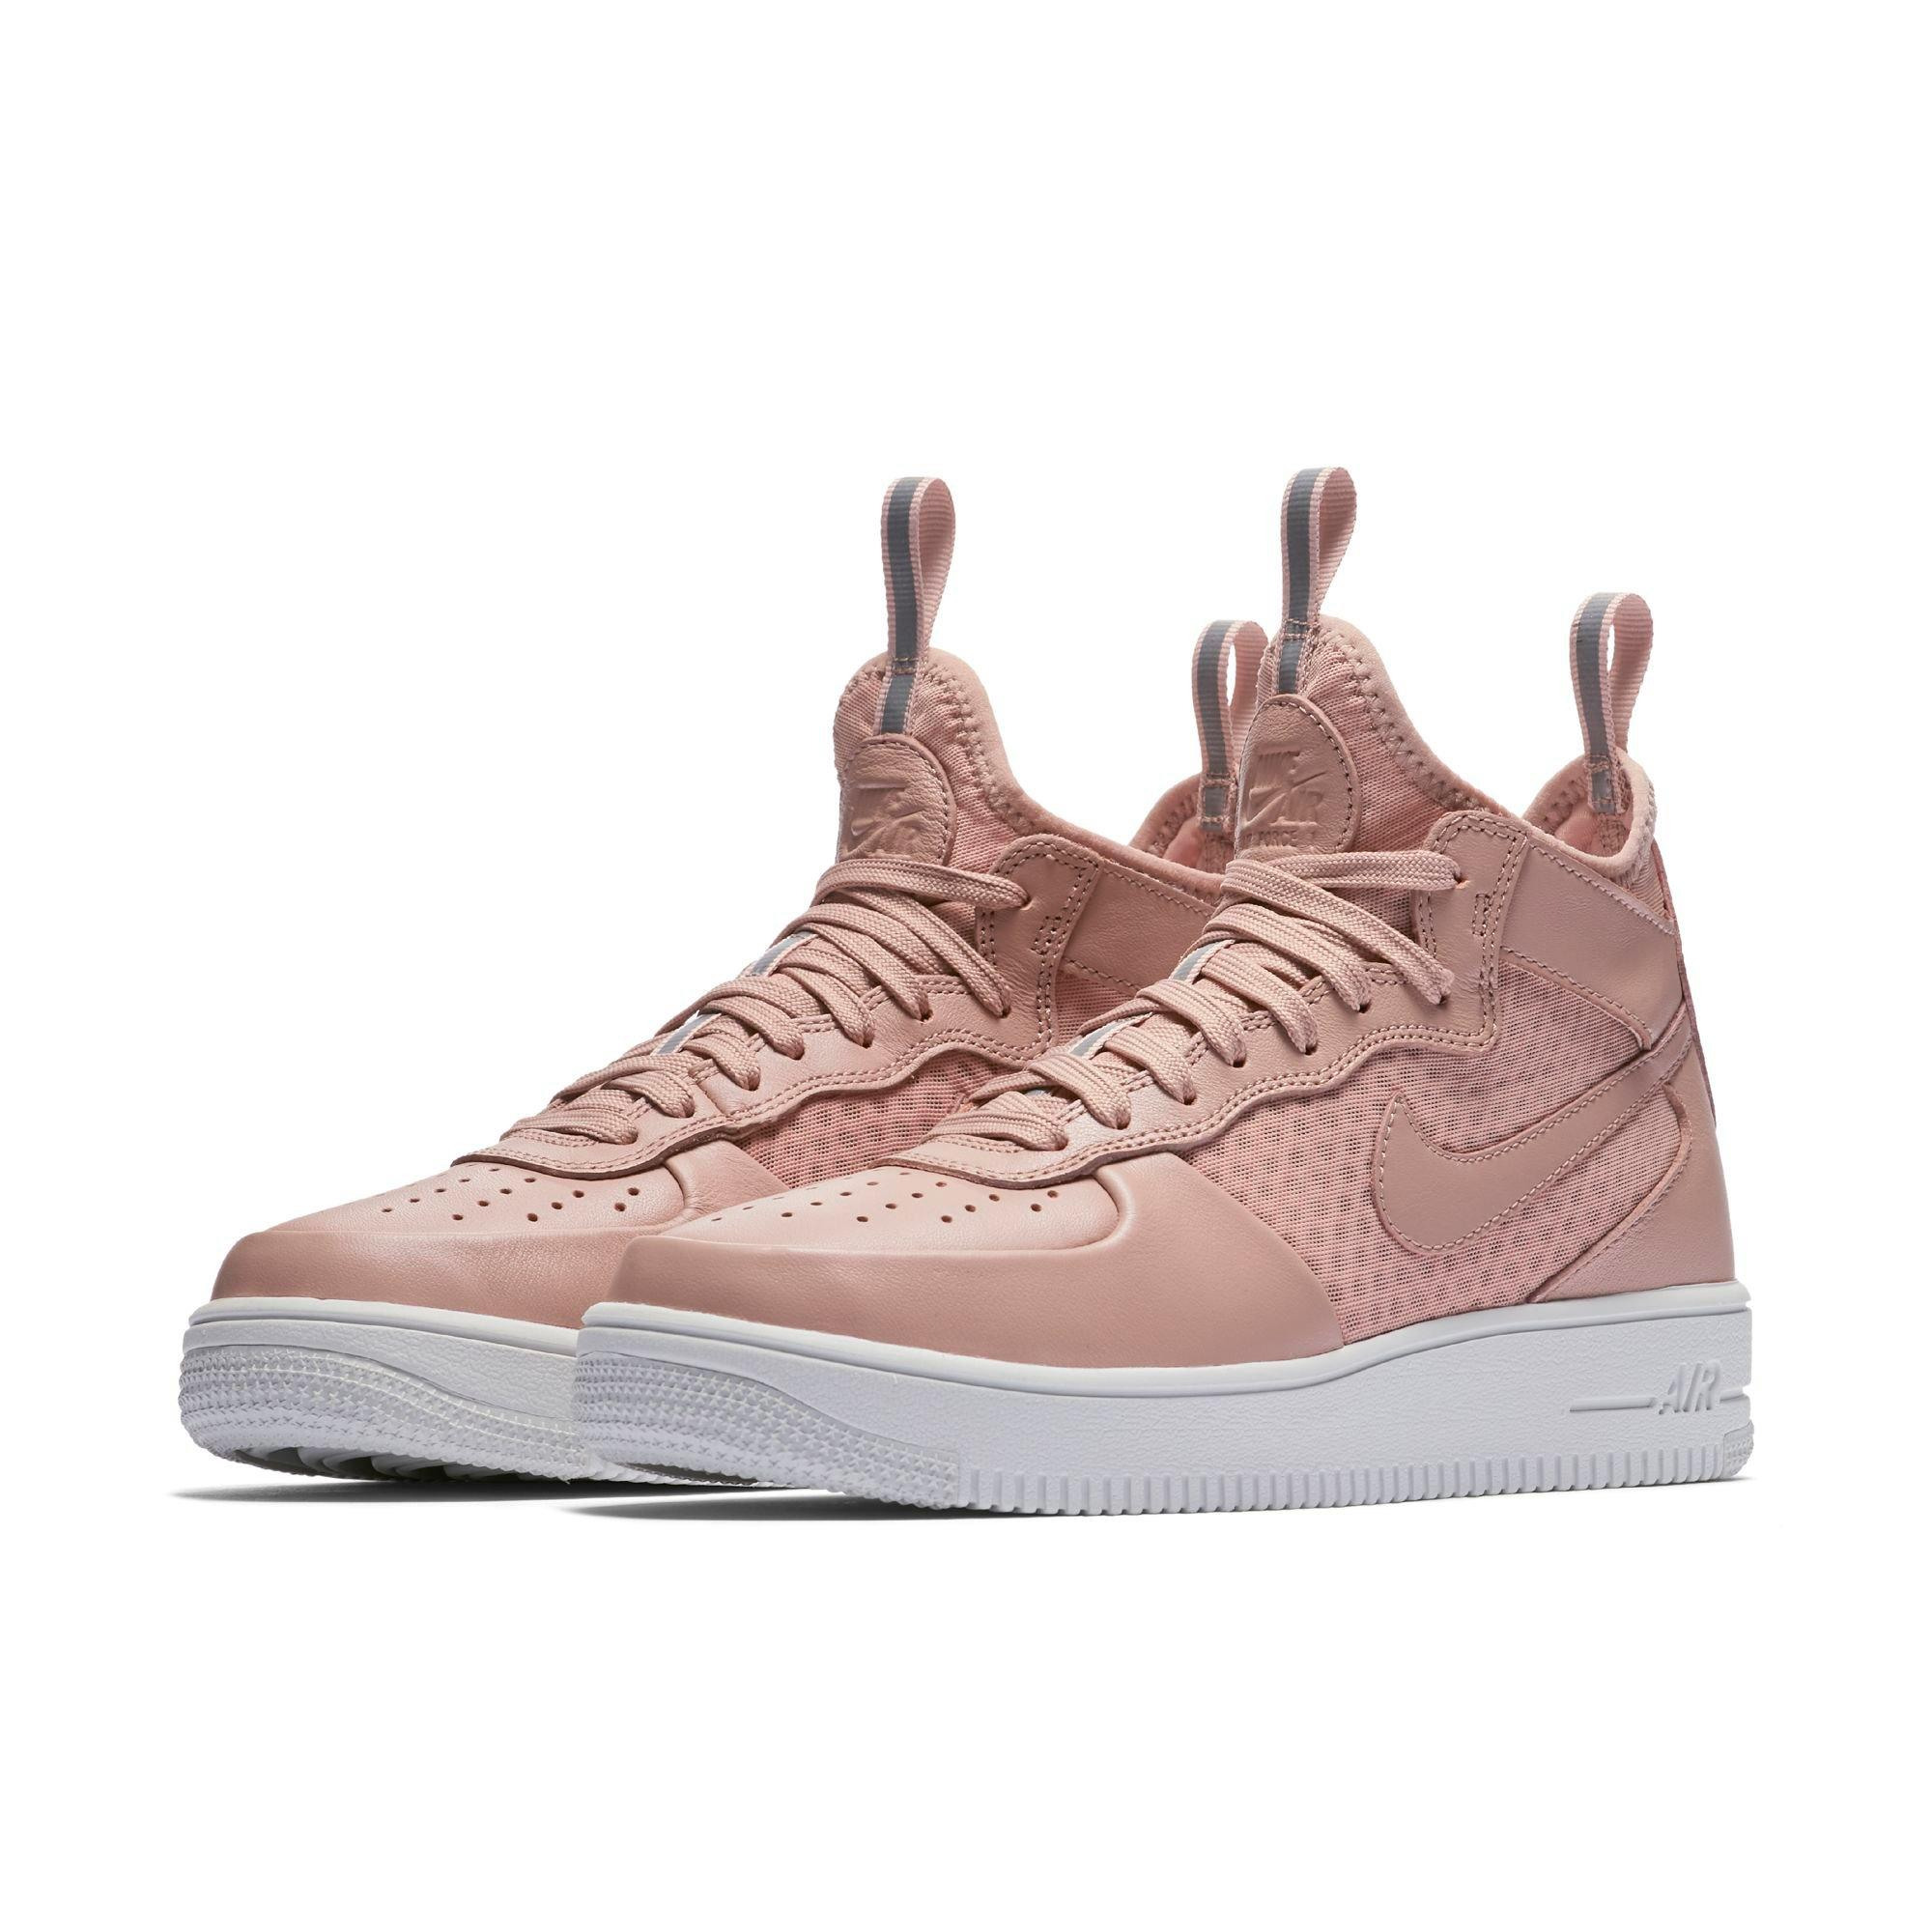 Femmes Nike Air Force 1 Ultraforce Mi Haut